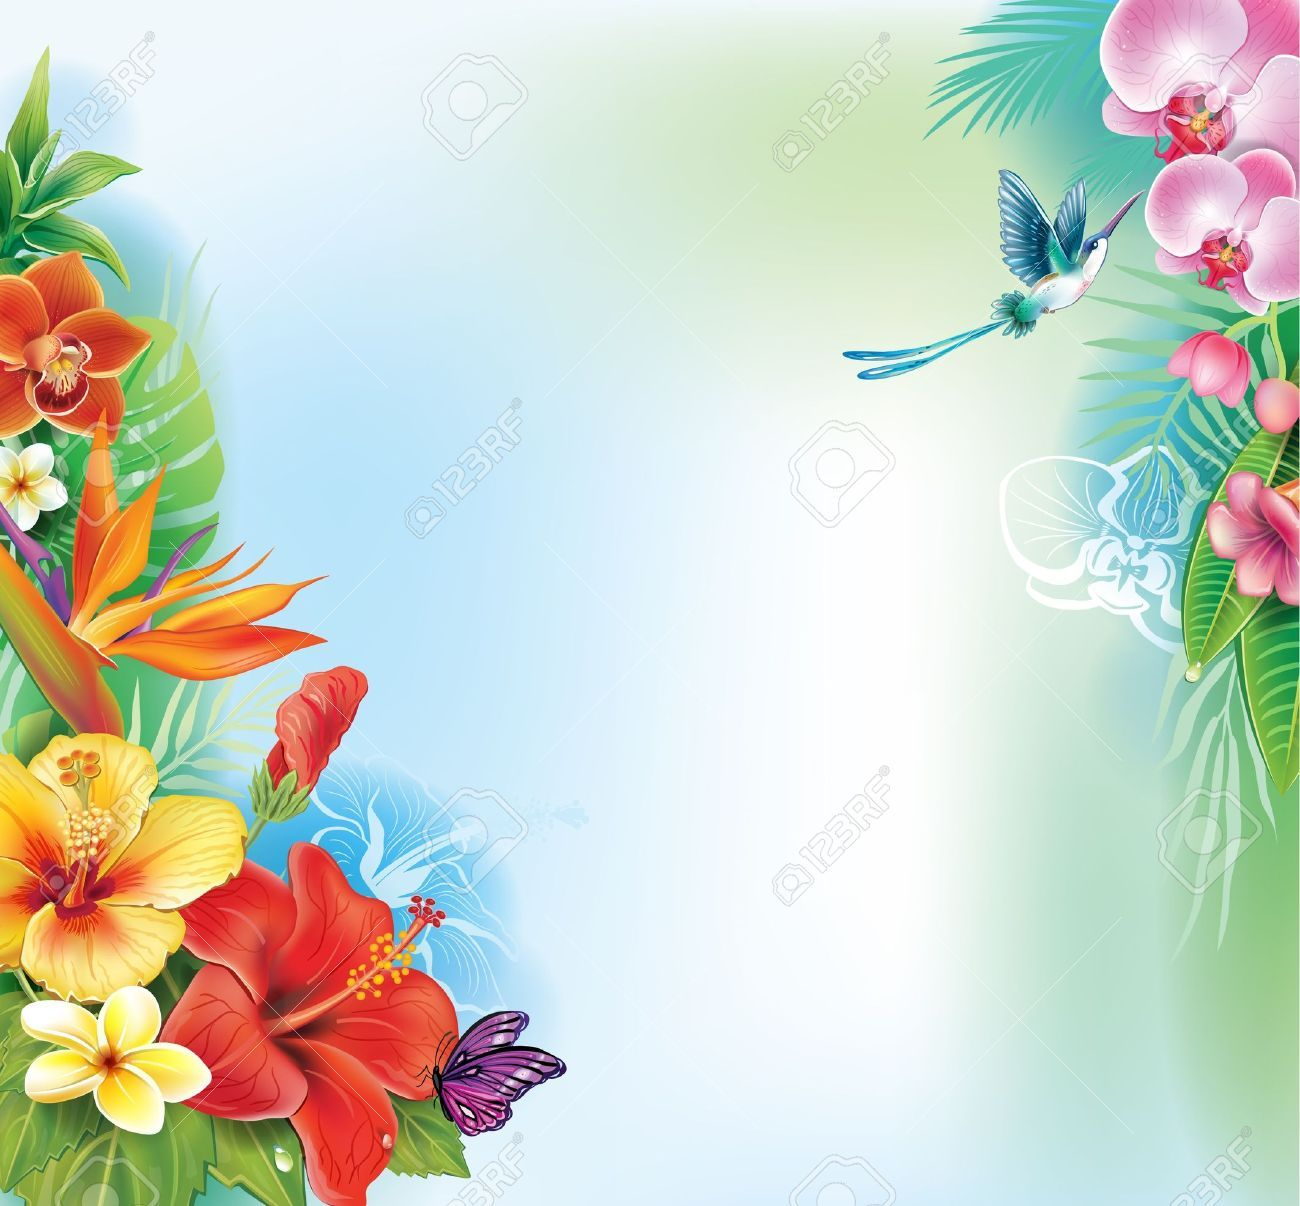 Google Clip Art Flowers - Year of Clean Water